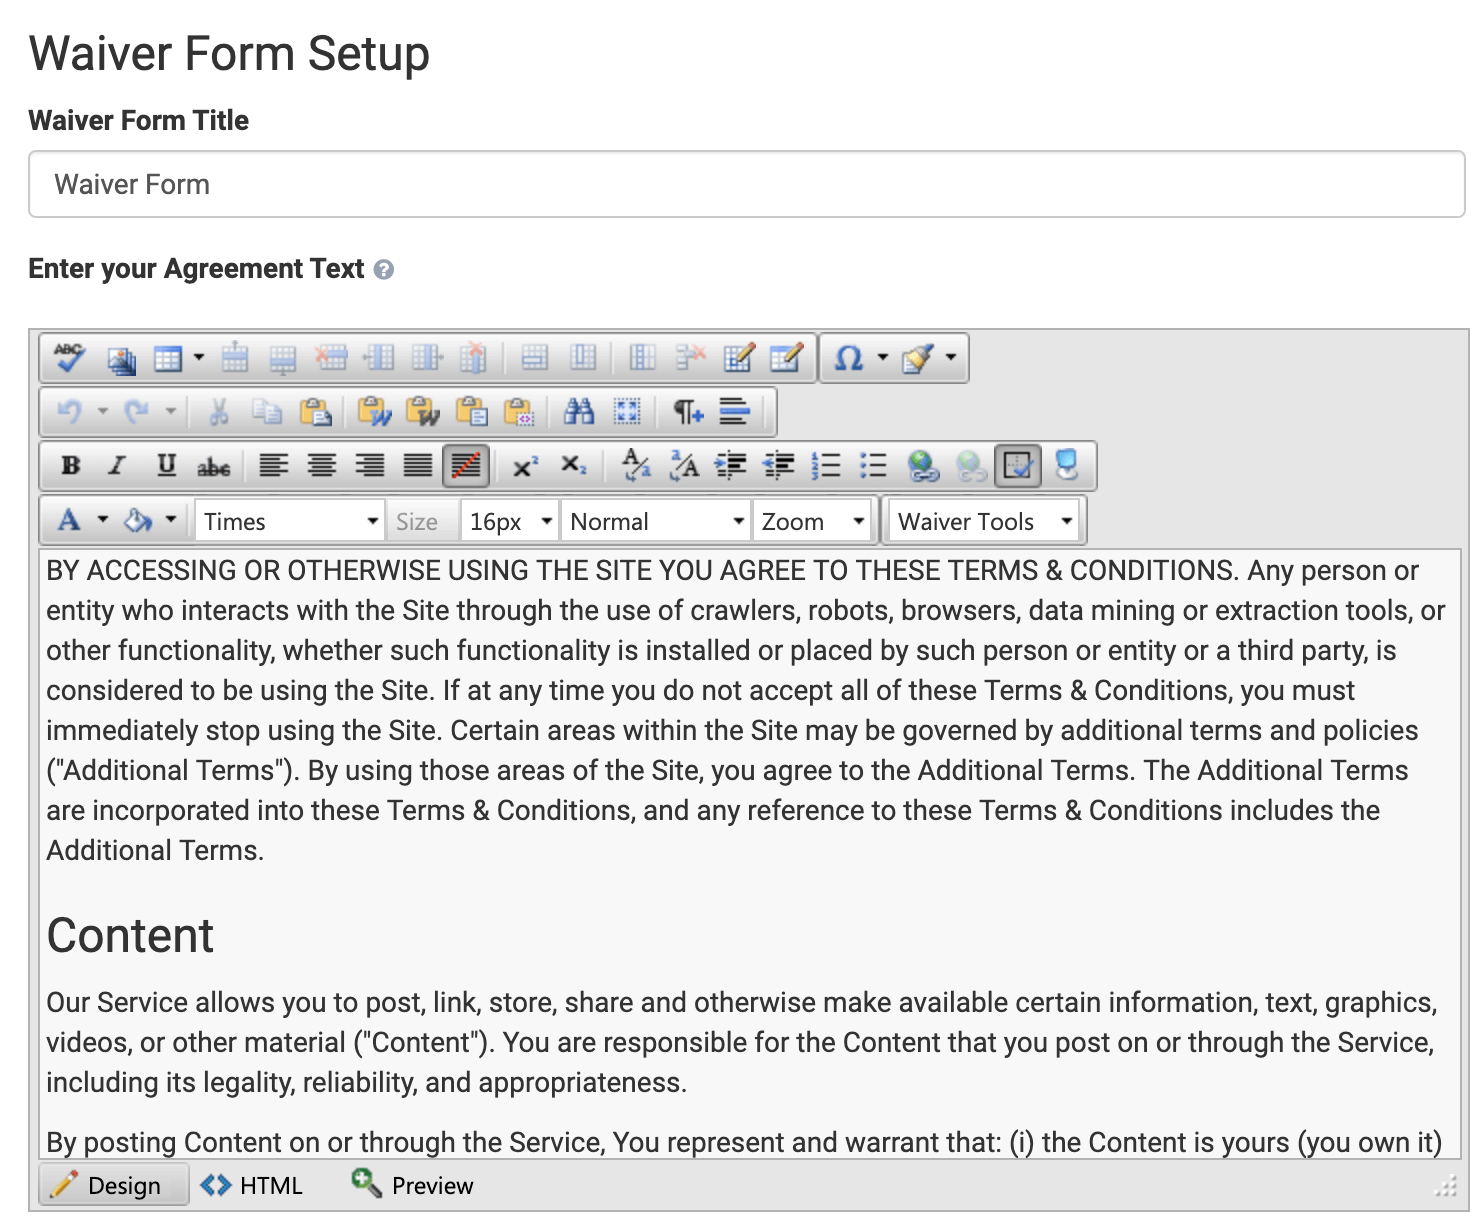 Setup waiver form with the rich text editor